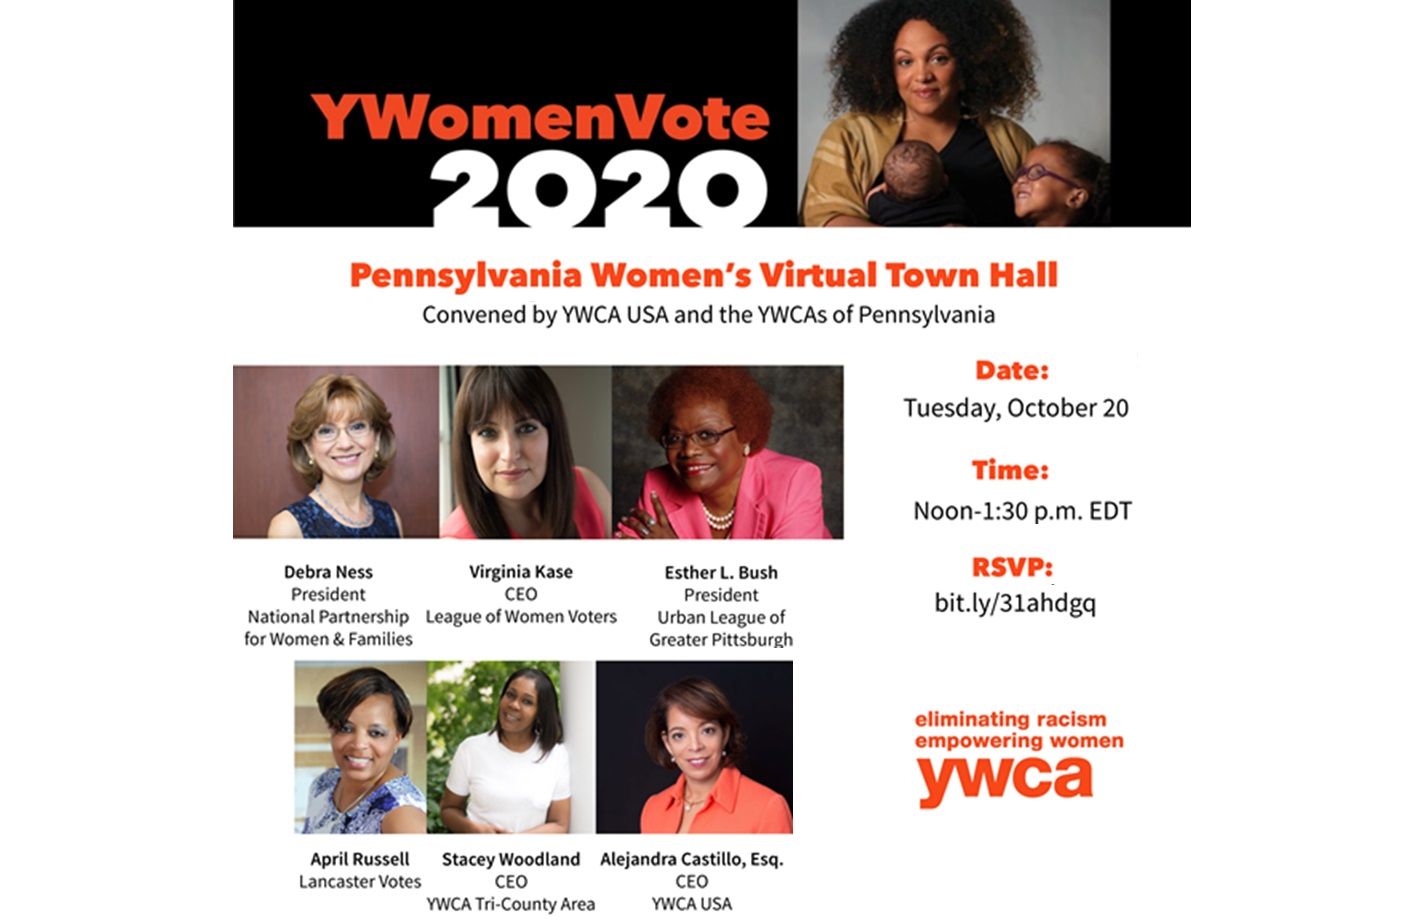 YWCAs to host pre-election virtual town hall